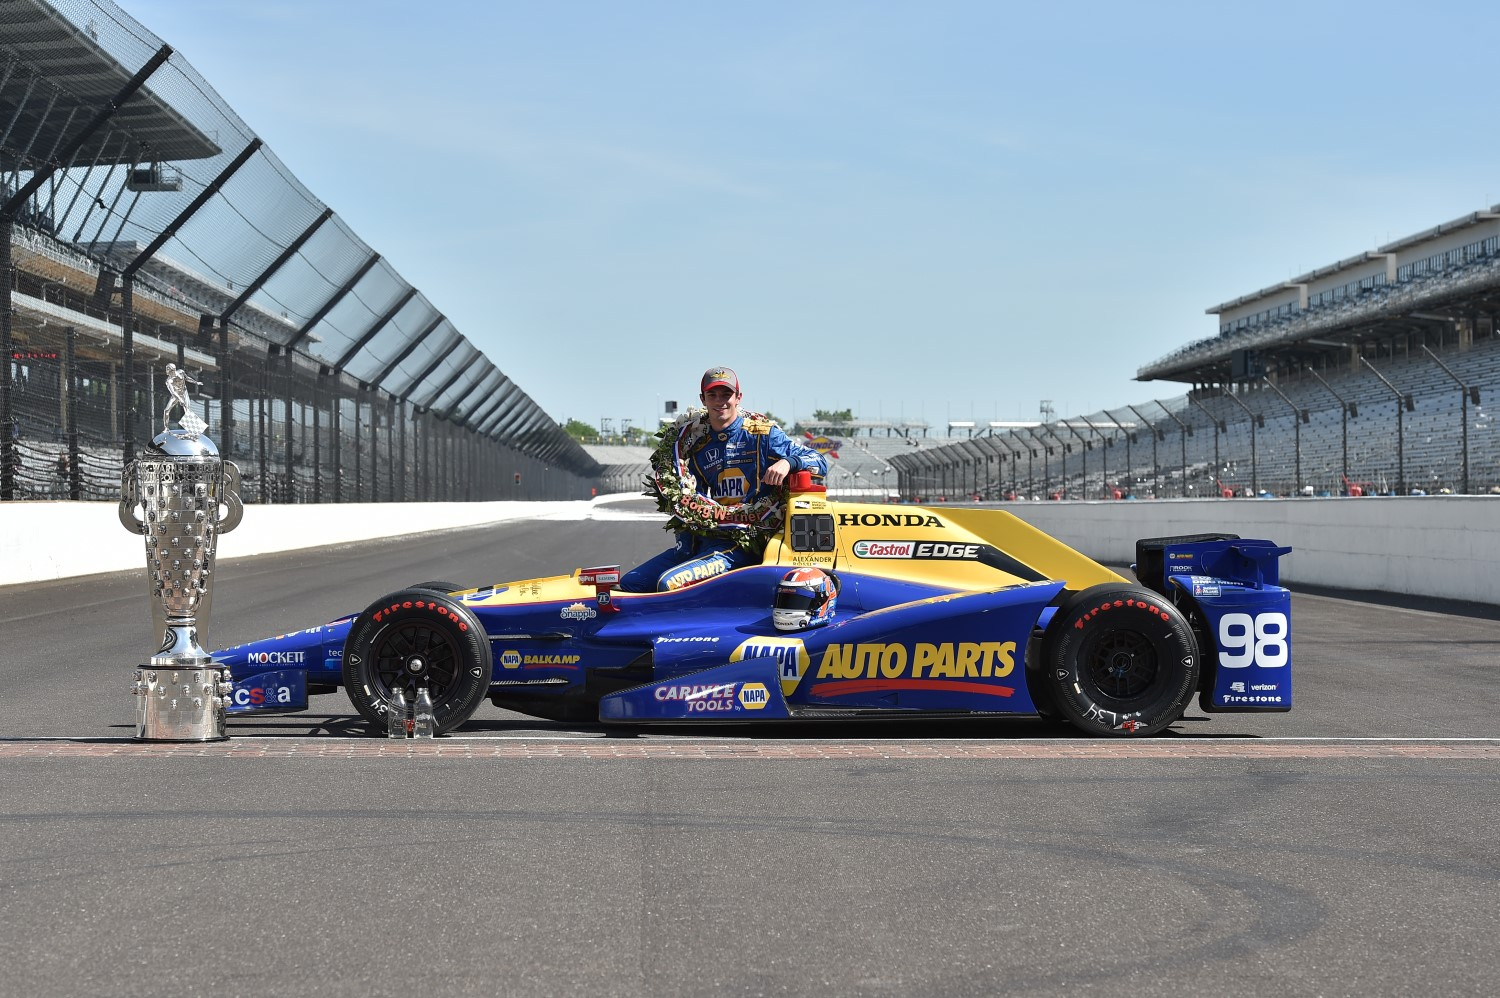 100th Indy 500 winner